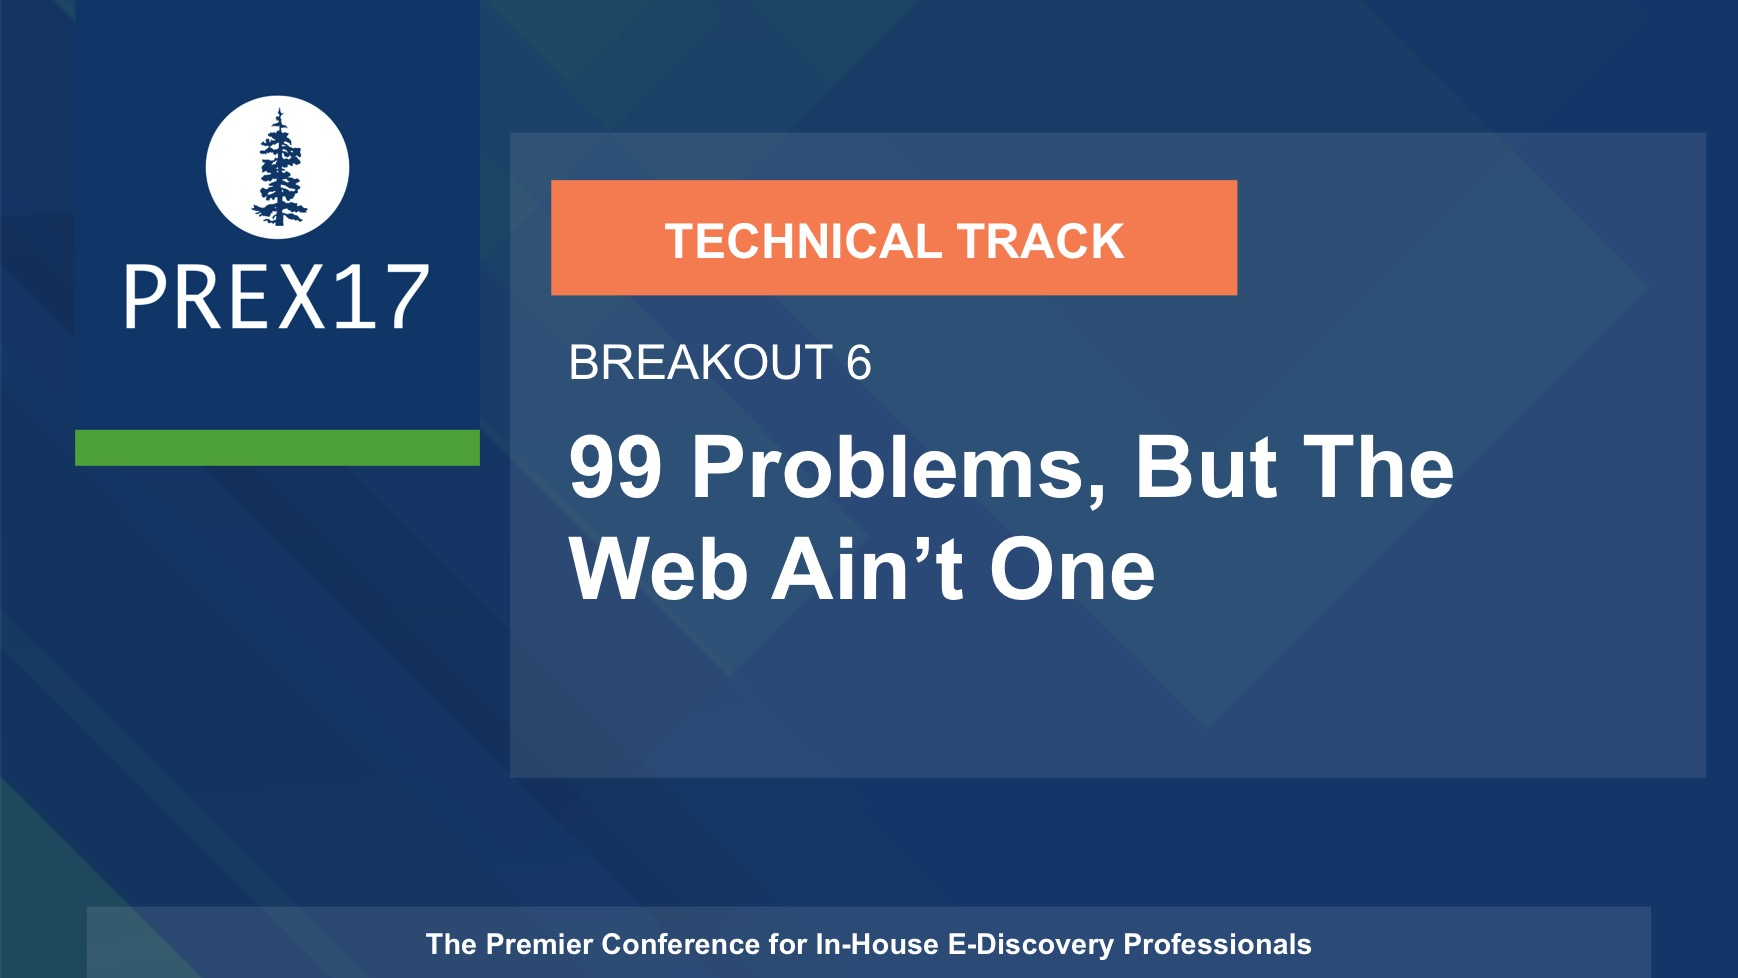 (Breakout 6 - Technical) 99 Problems, But The Web Ain't One